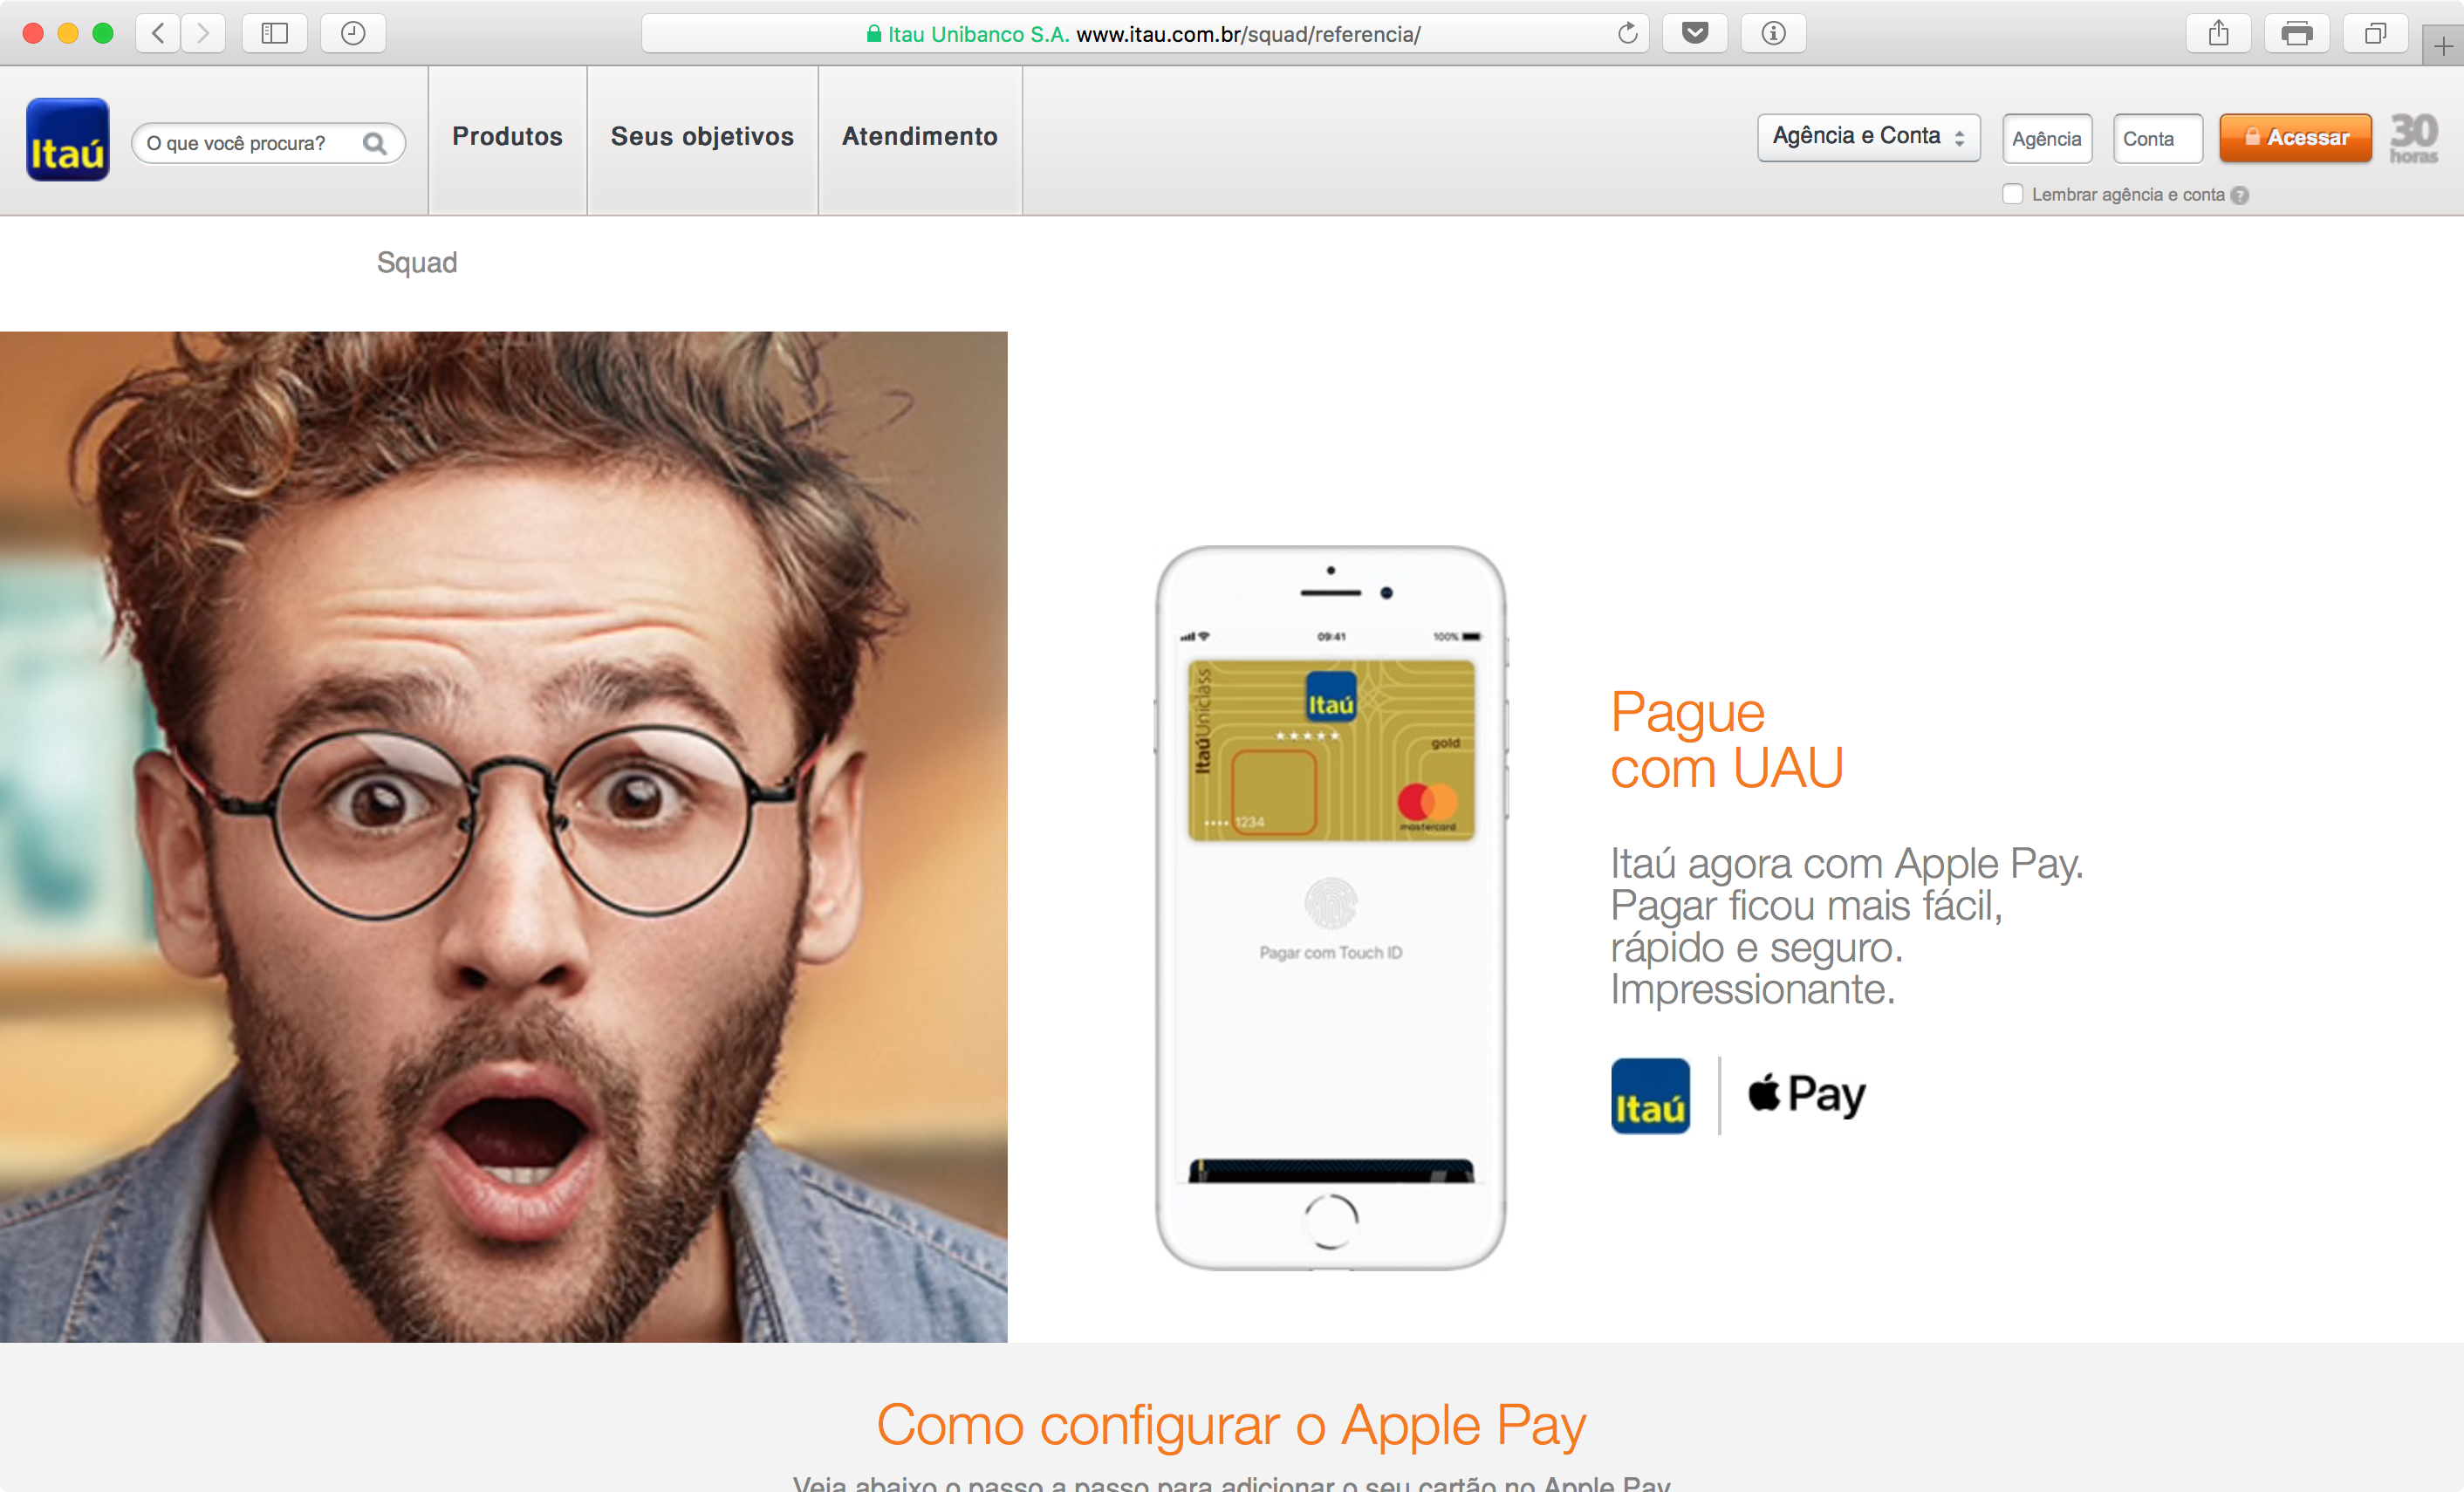 Página do Apple Pay no site do Banco Itaú